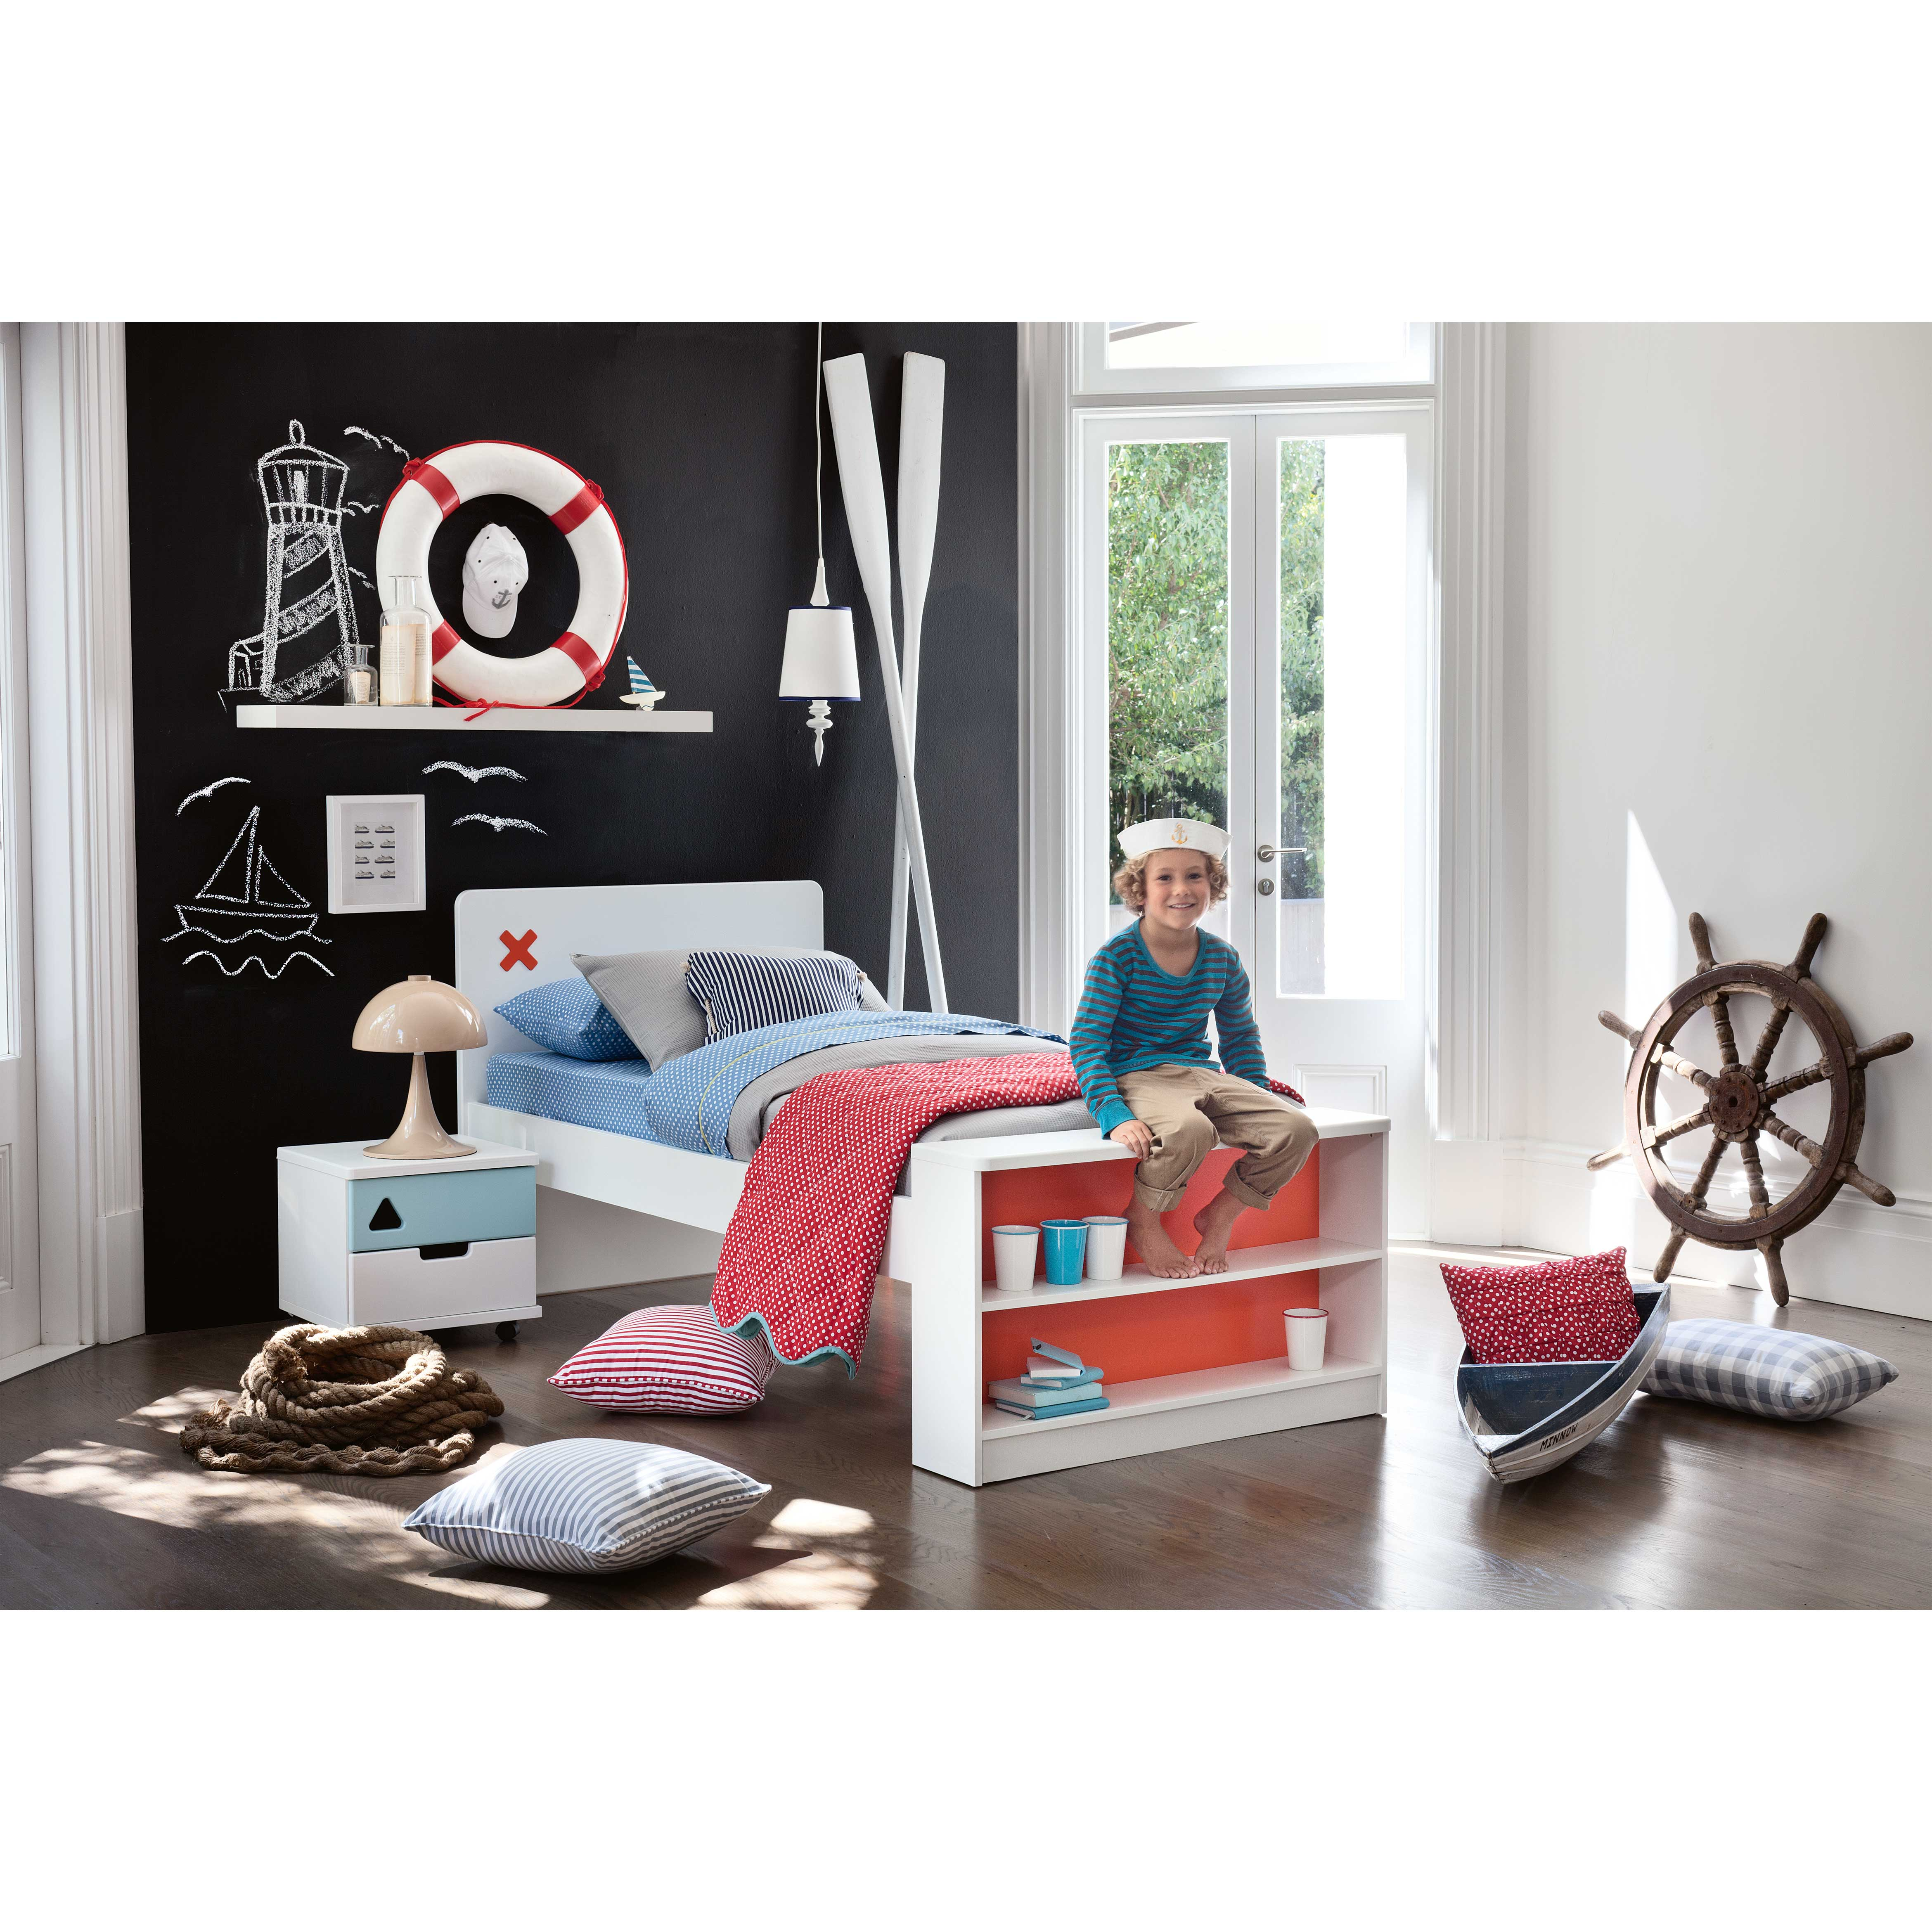 'Junior Options ' Single Bed with Bookcase